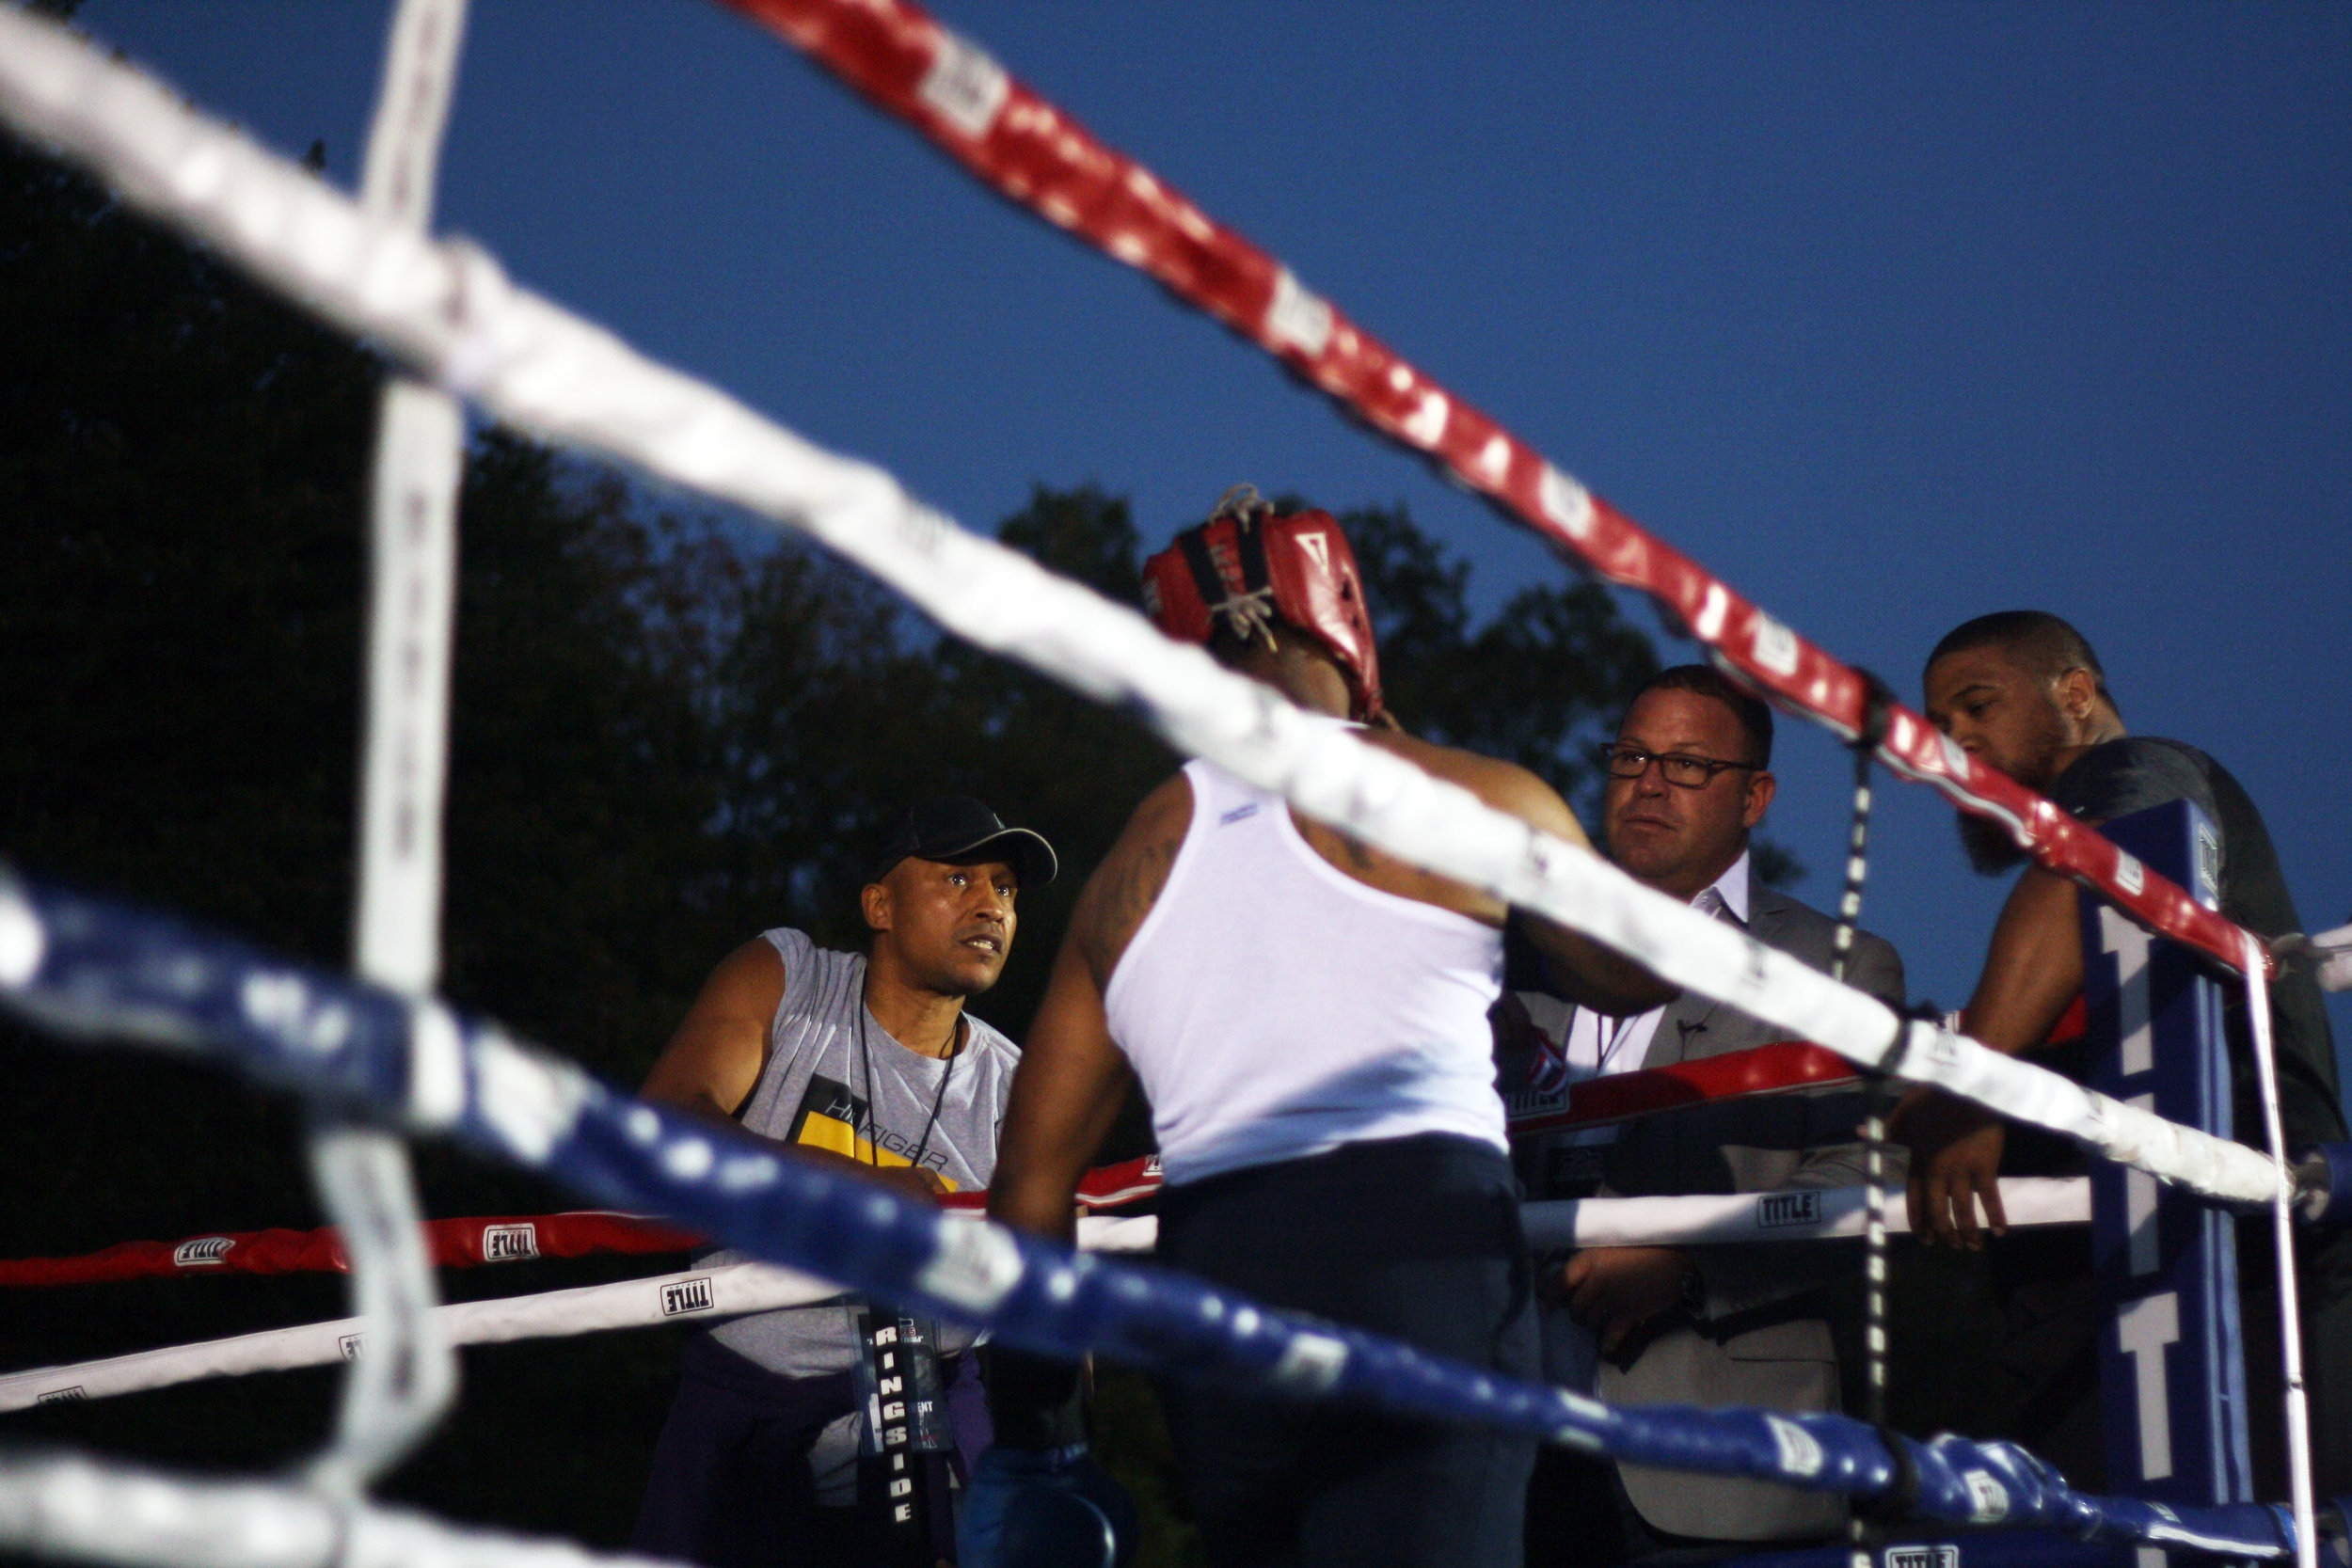 Jarrod, now 43 years old, stays close to the ring as a promoter of Brawl For It All, an amateur boxing series he co-founded. The most recent installment was held in October 2017, in the parking lot of an Italian restaurant in Woonsocket, Rhode Island.  Photo by Rob Szypko.